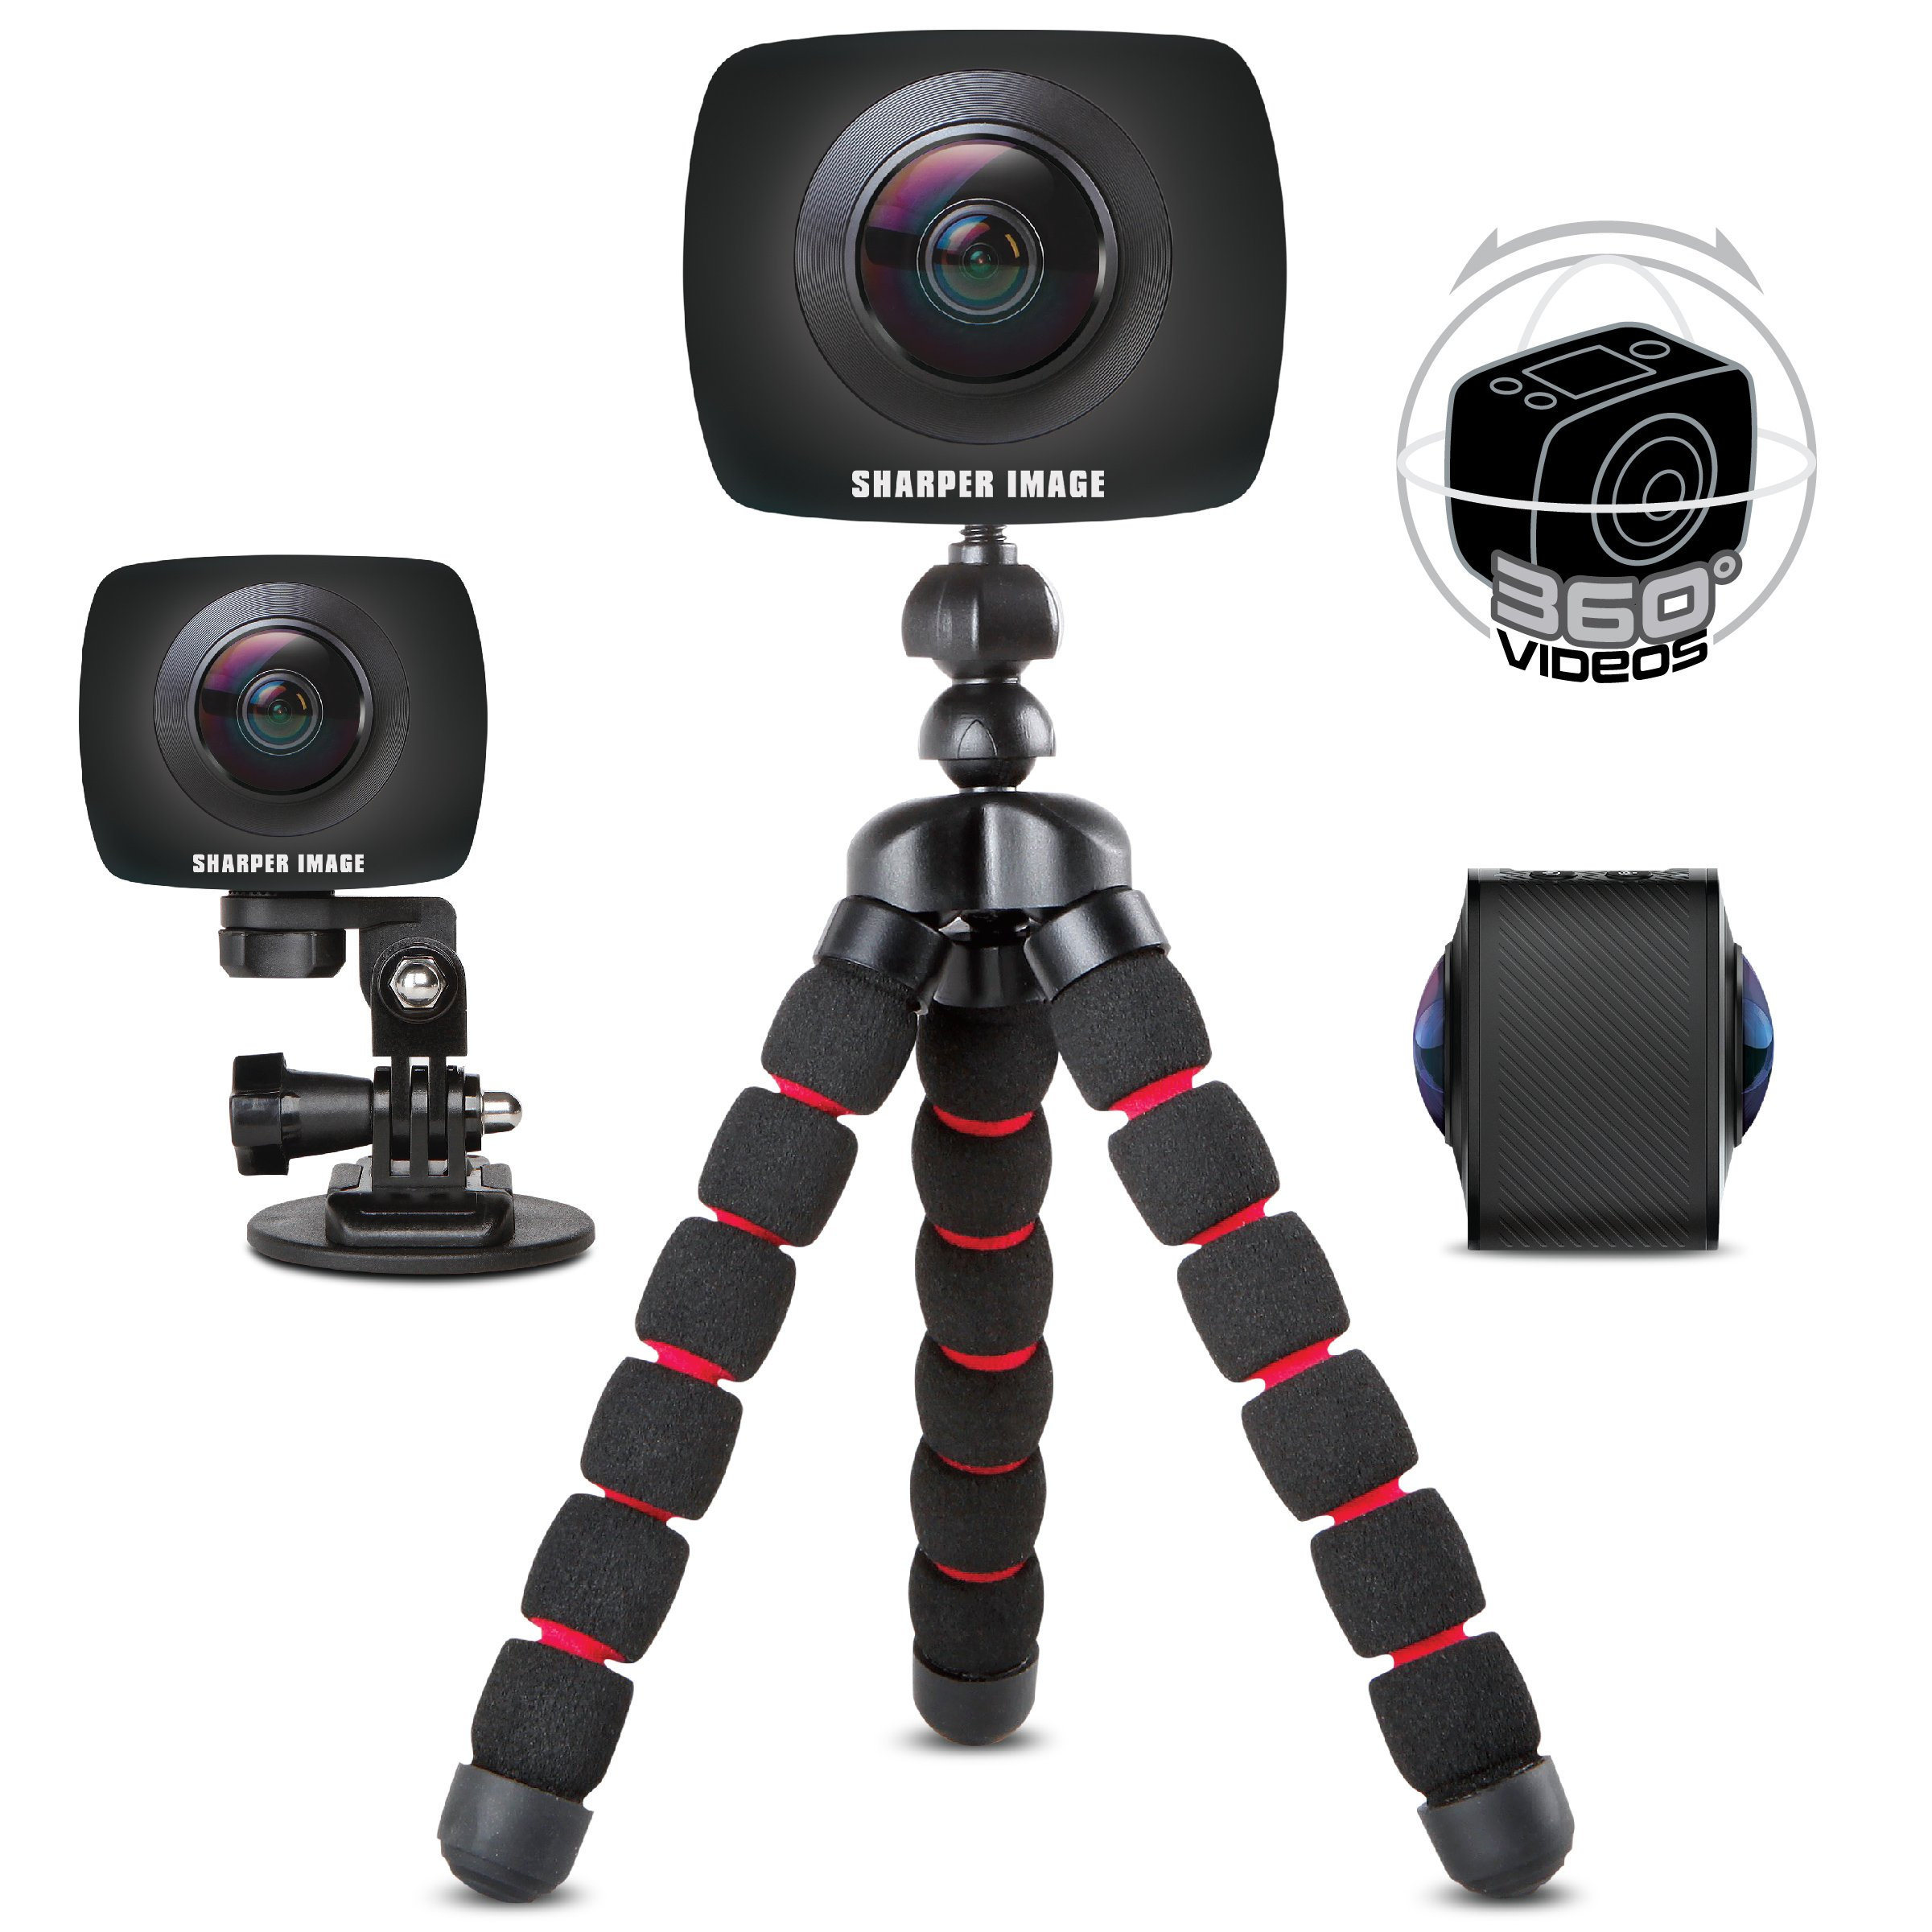 SHARPER Image 360 Action Camera w/Wide Dual Lens, Record 960P Video & Photos for VR Virtual Reality, Handheld Mini Tripod and Car Dash Cam Mount, Smartphone & Micro SD Card Compatible